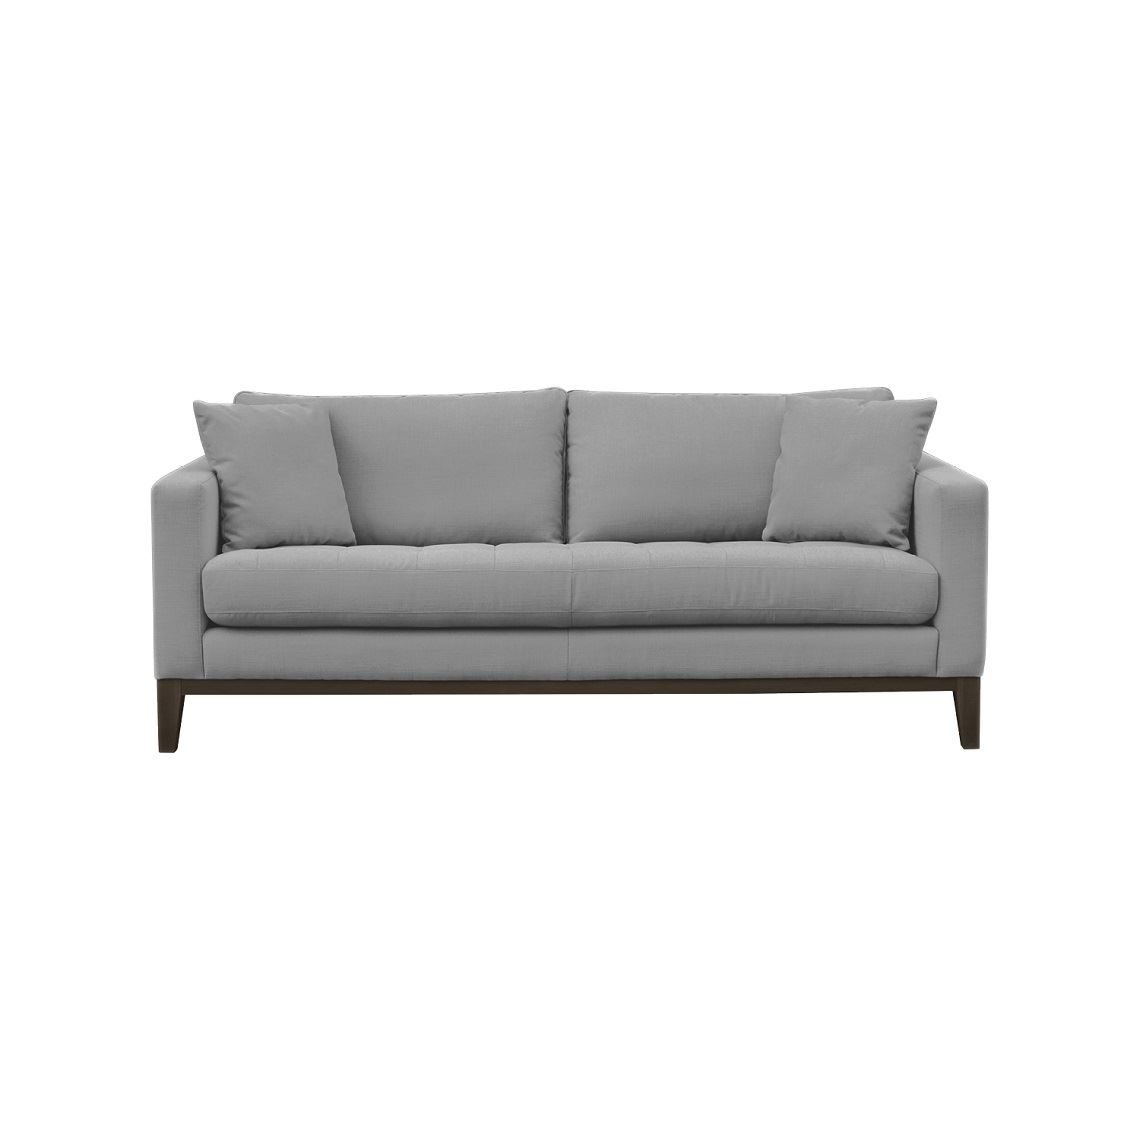 Marley 3 Seat Sofa Size W 208cm x D 90cm x H 84cm in Cloud Fabric/Foam/Fibre Freedom by Freedom, a Sofas for sale on Style Sourcebook